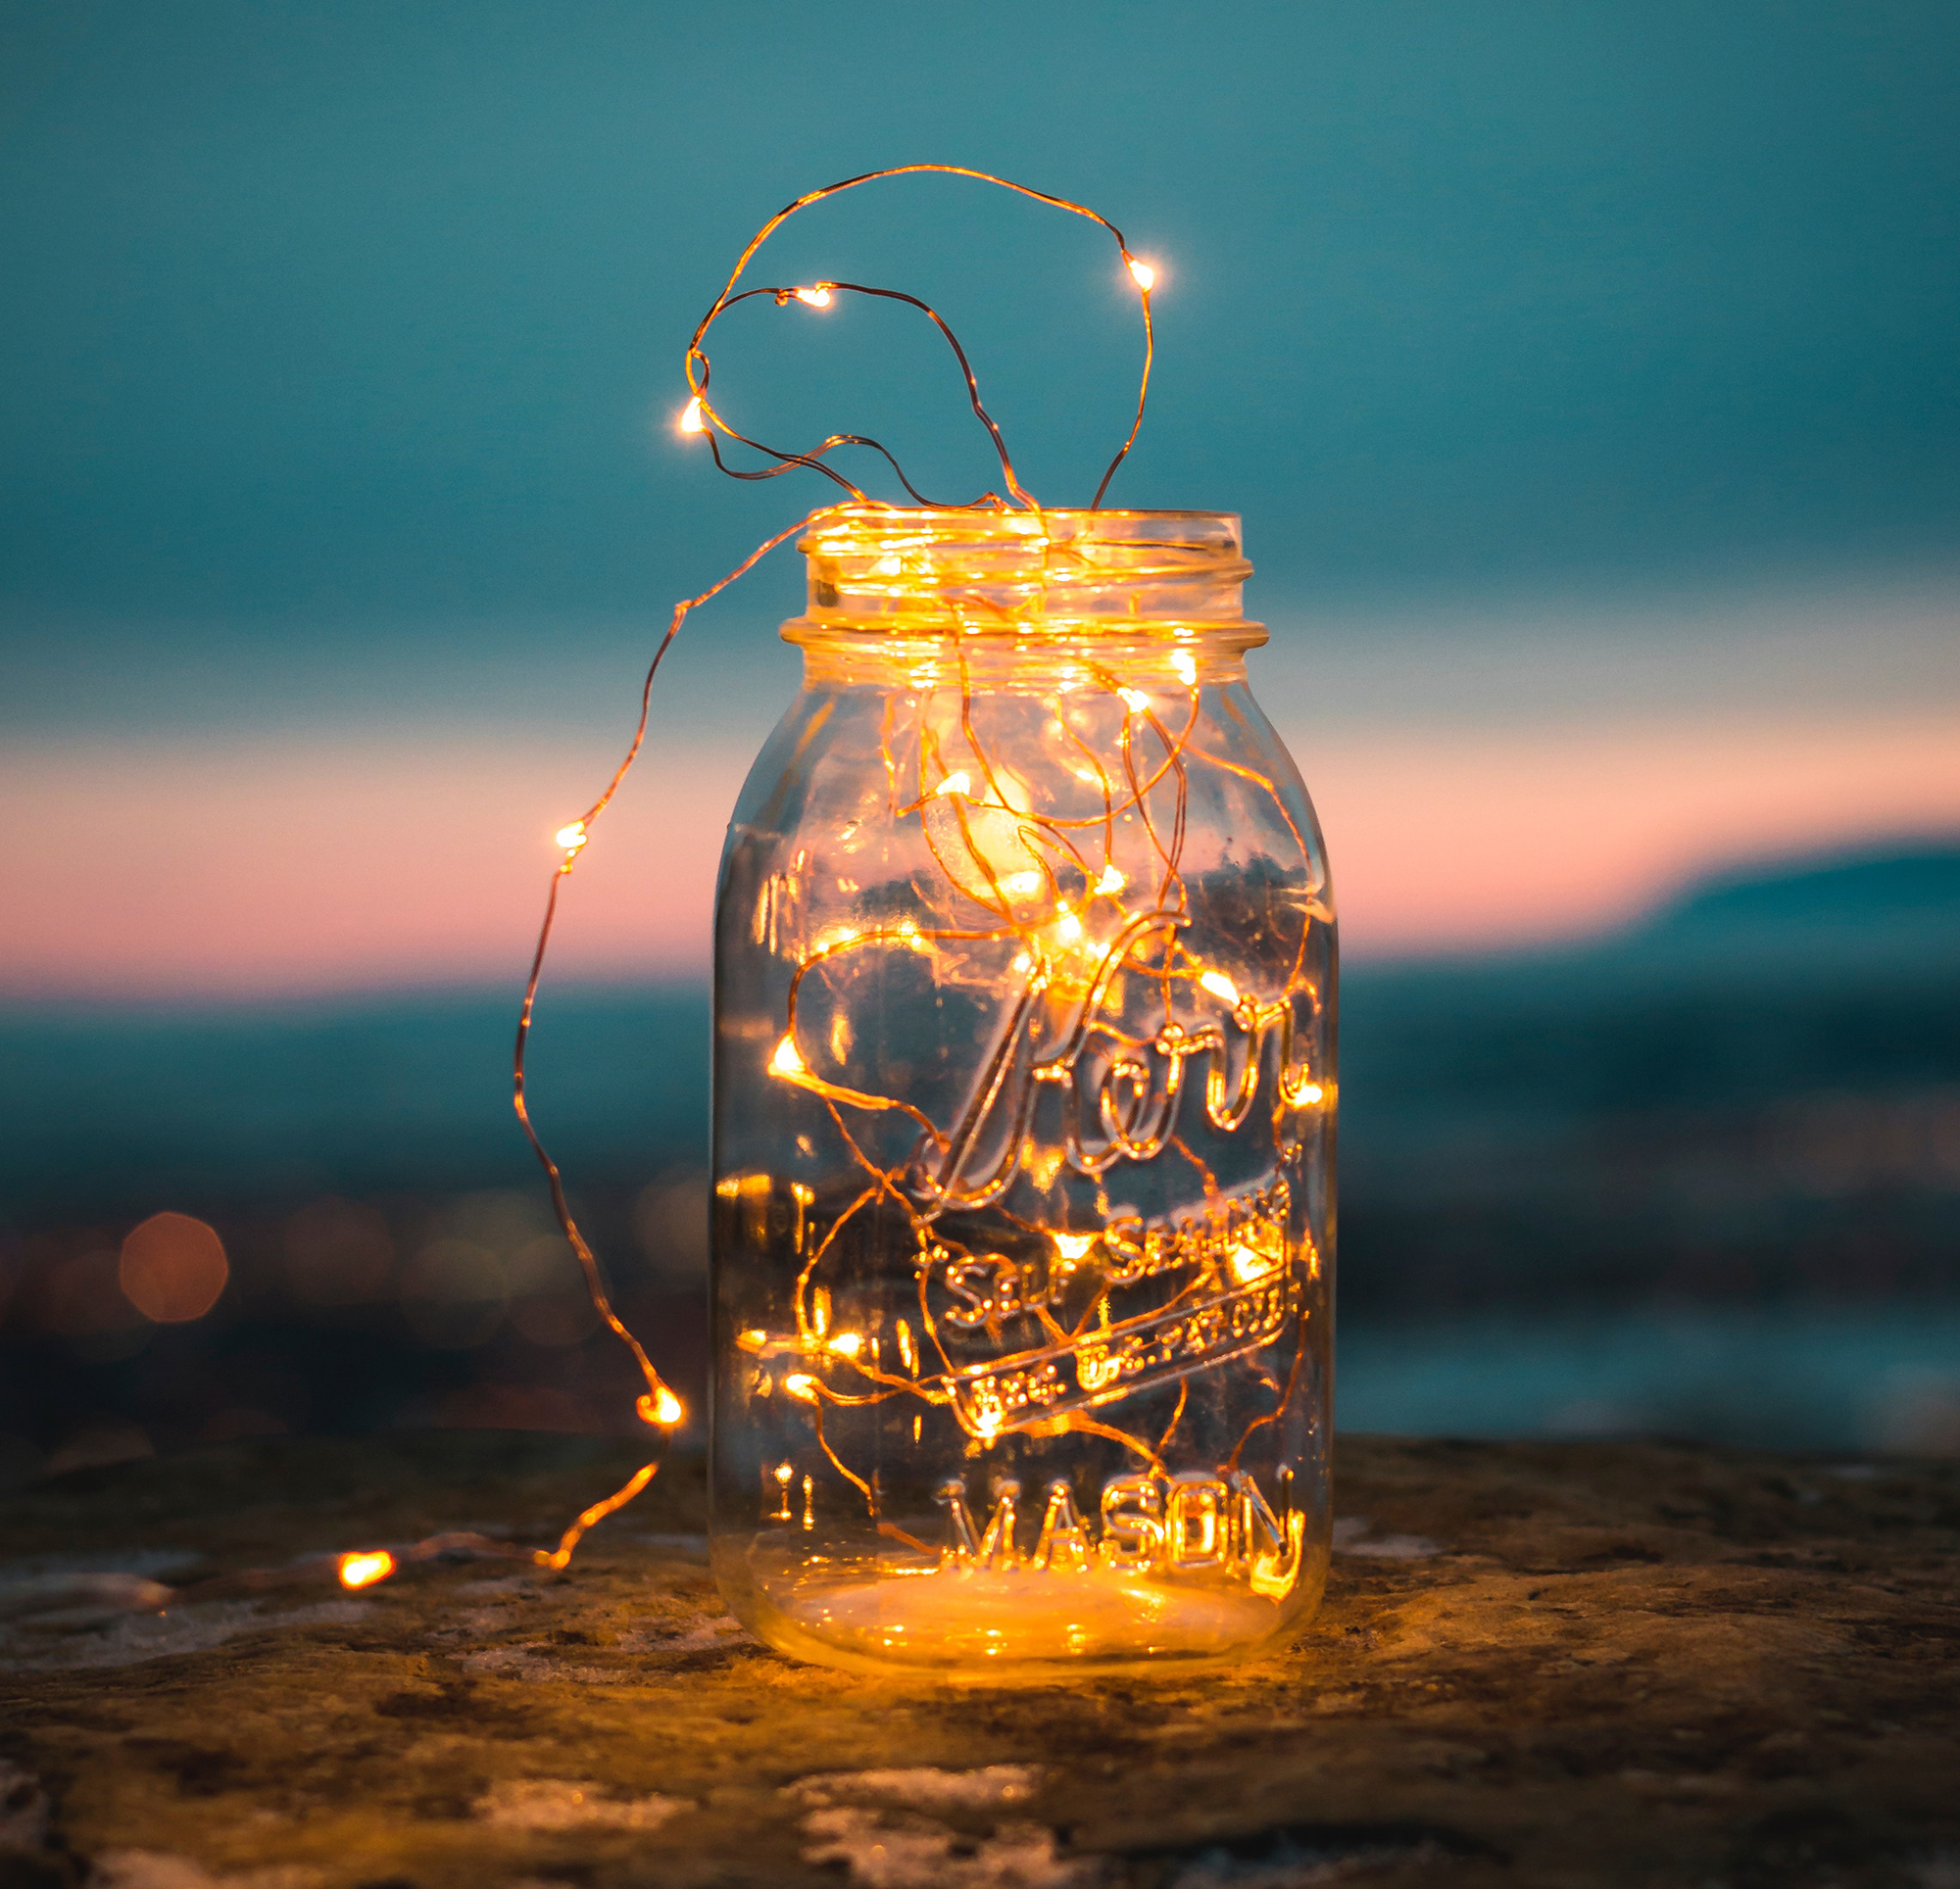 A mason jar filled with a string of tiny lights